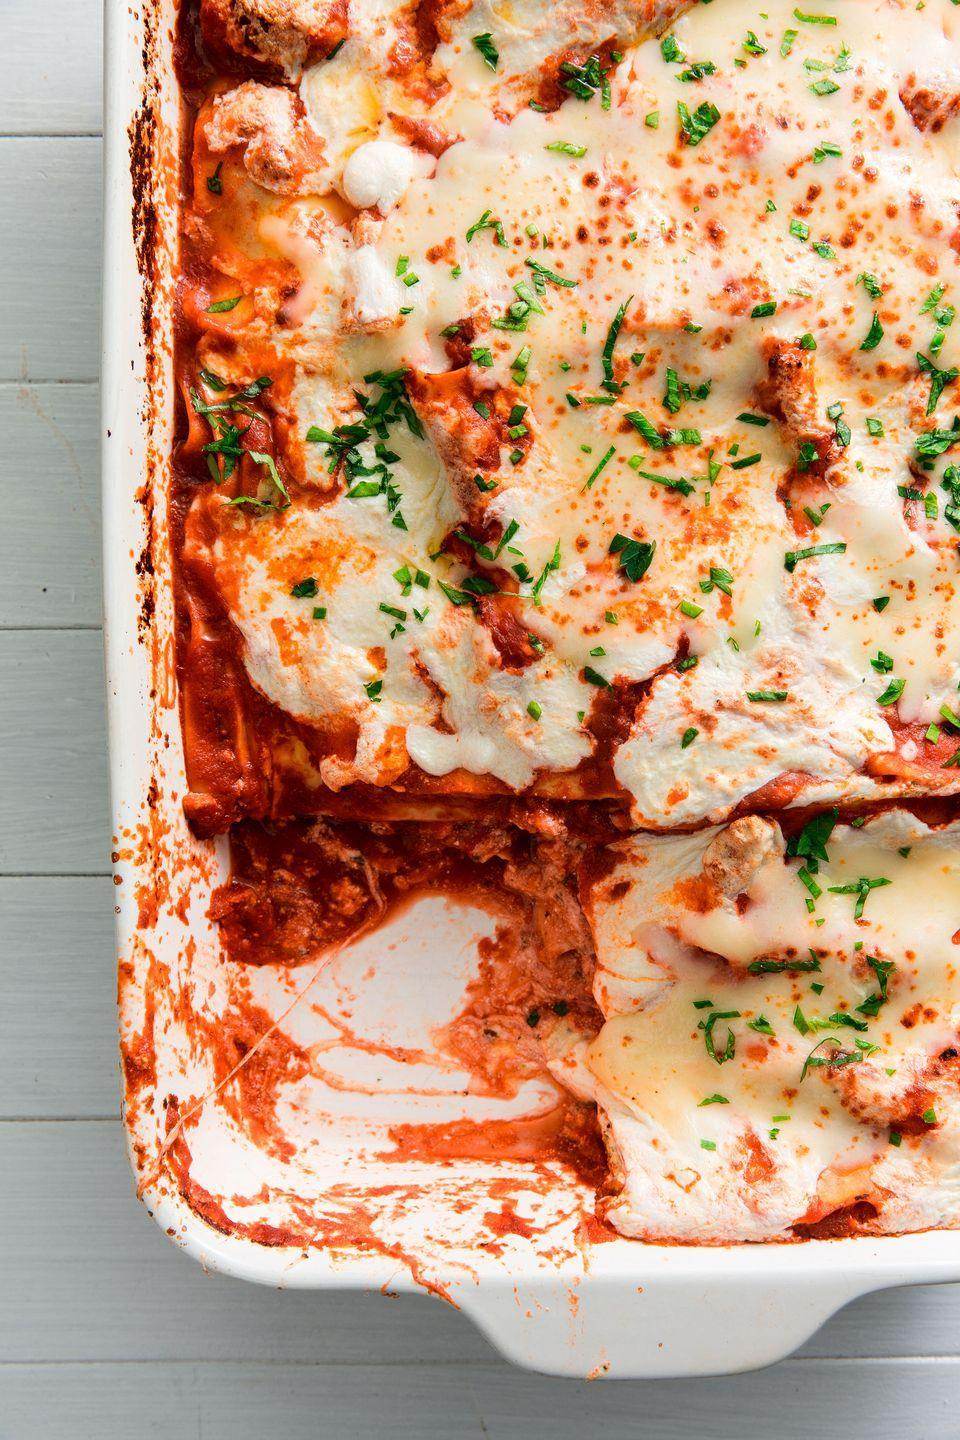 "<p>Two words: cheesy & saucy. </p><p>Get the recipe from <a href=""https://www.delish.com/cooking/recipe-ideas/a22024777/easy-vegetarian-lasagna-recipe/"" rel=""nofollow noopener"" target=""_blank"" data-ylk=""slk:Delish."" class=""link rapid-noclick-resp"">Delish. </a></p>"